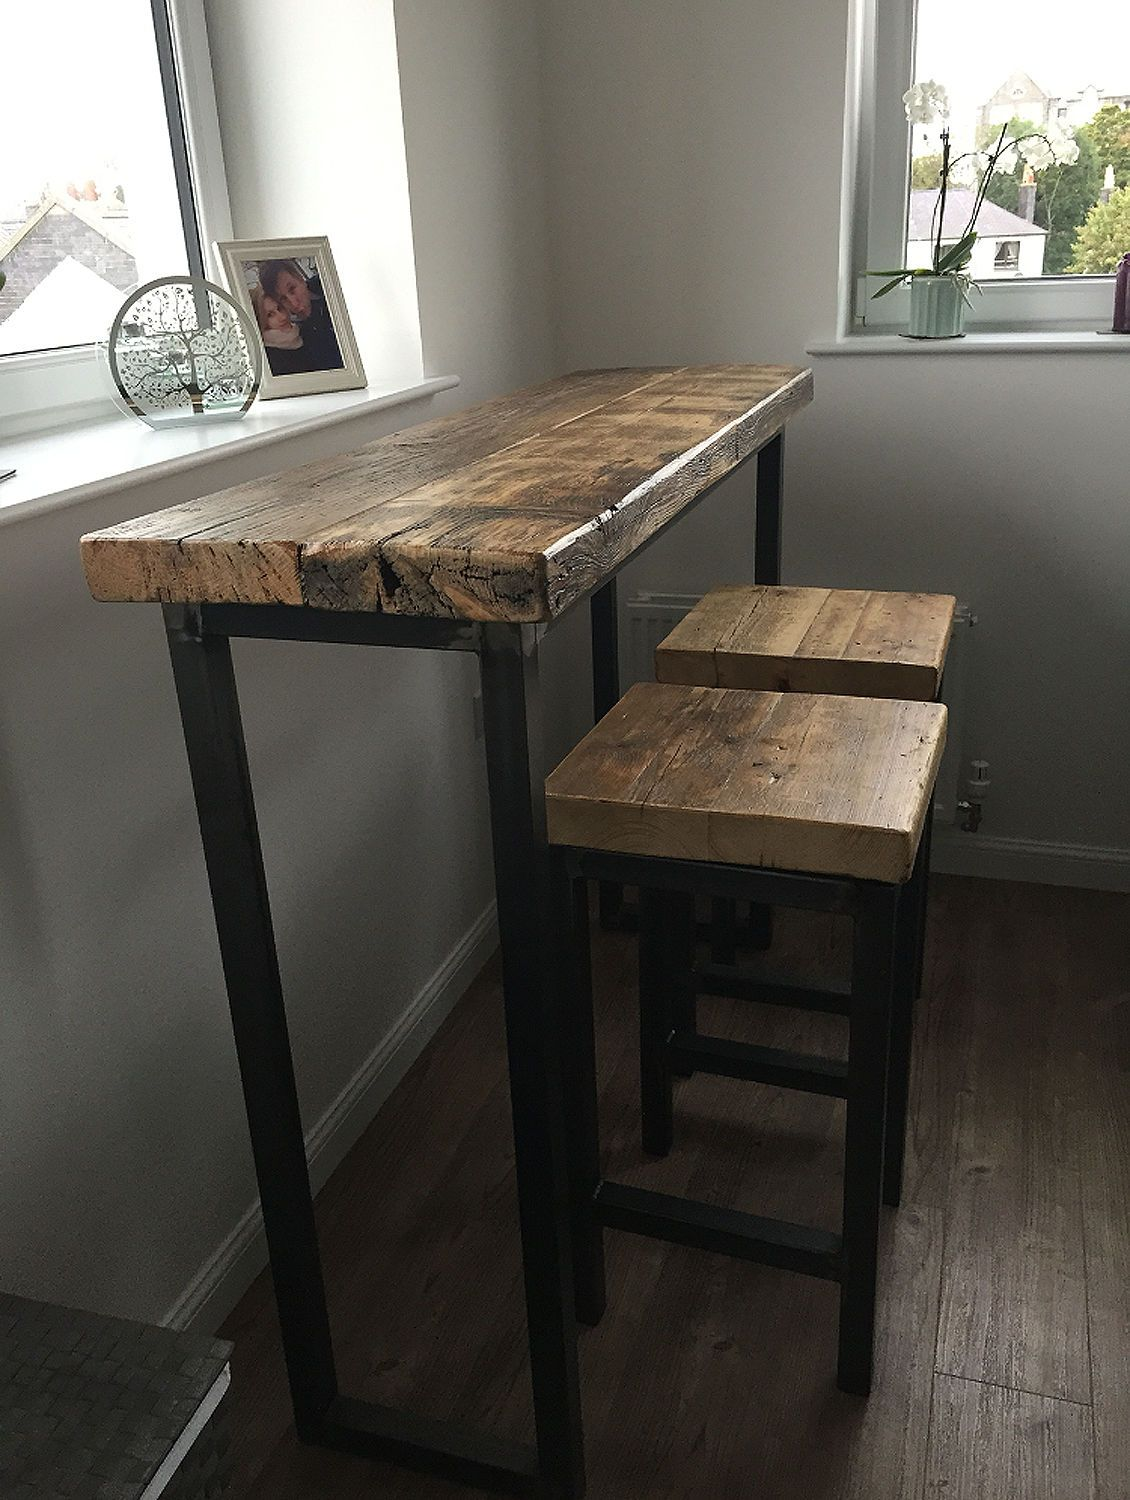 Phenomenal Industrial Mill Reclaimed Wood Breakfast Bar Console Table Pabps2019 Chair Design Images Pabps2019Com